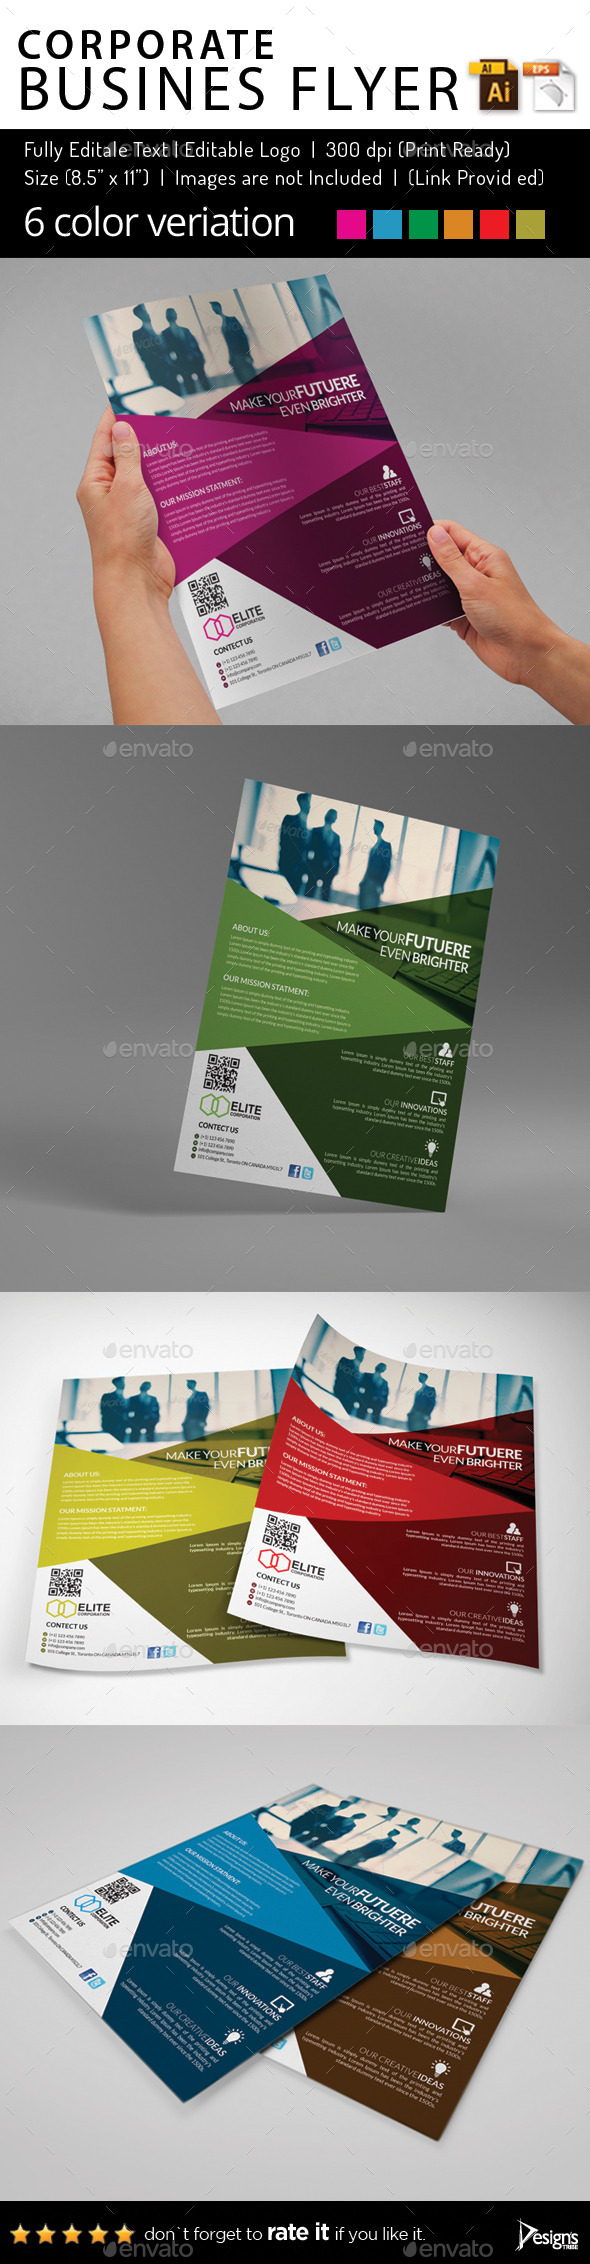 Multipurpose Business Flyer 66 - Corporate Flyers